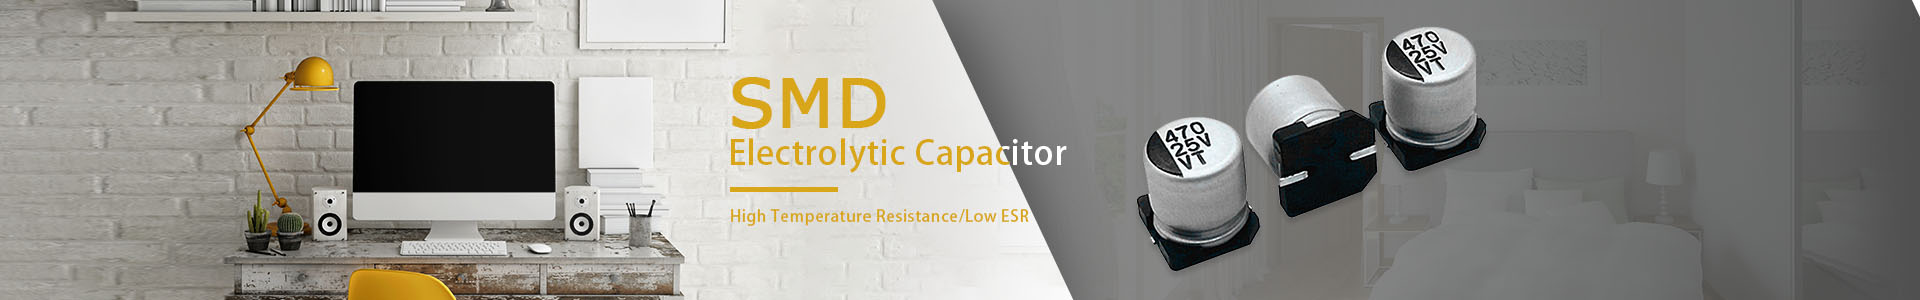 SMD Capacitors 10UF 100V Big Chip Aluminum Electrolytic Capacitors - SMD Capacitor